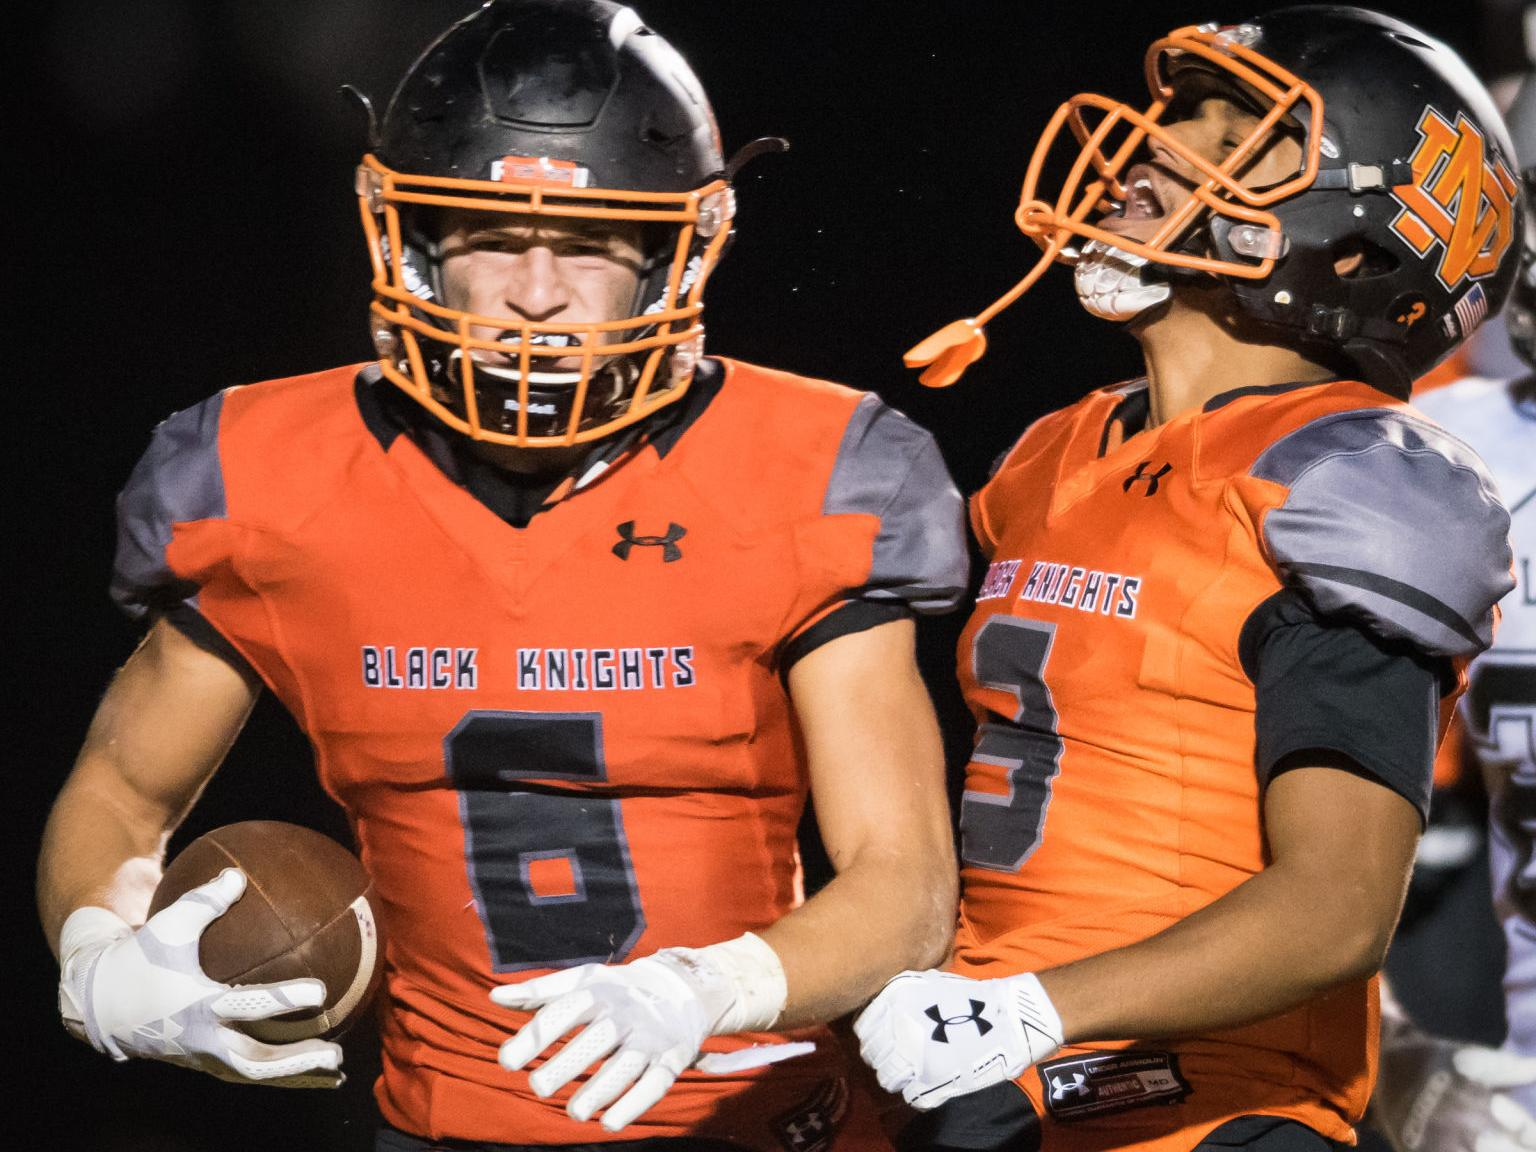 North Davidson, Shelby meet in Class 2-AA state football championship game after hurdling 'the hump'